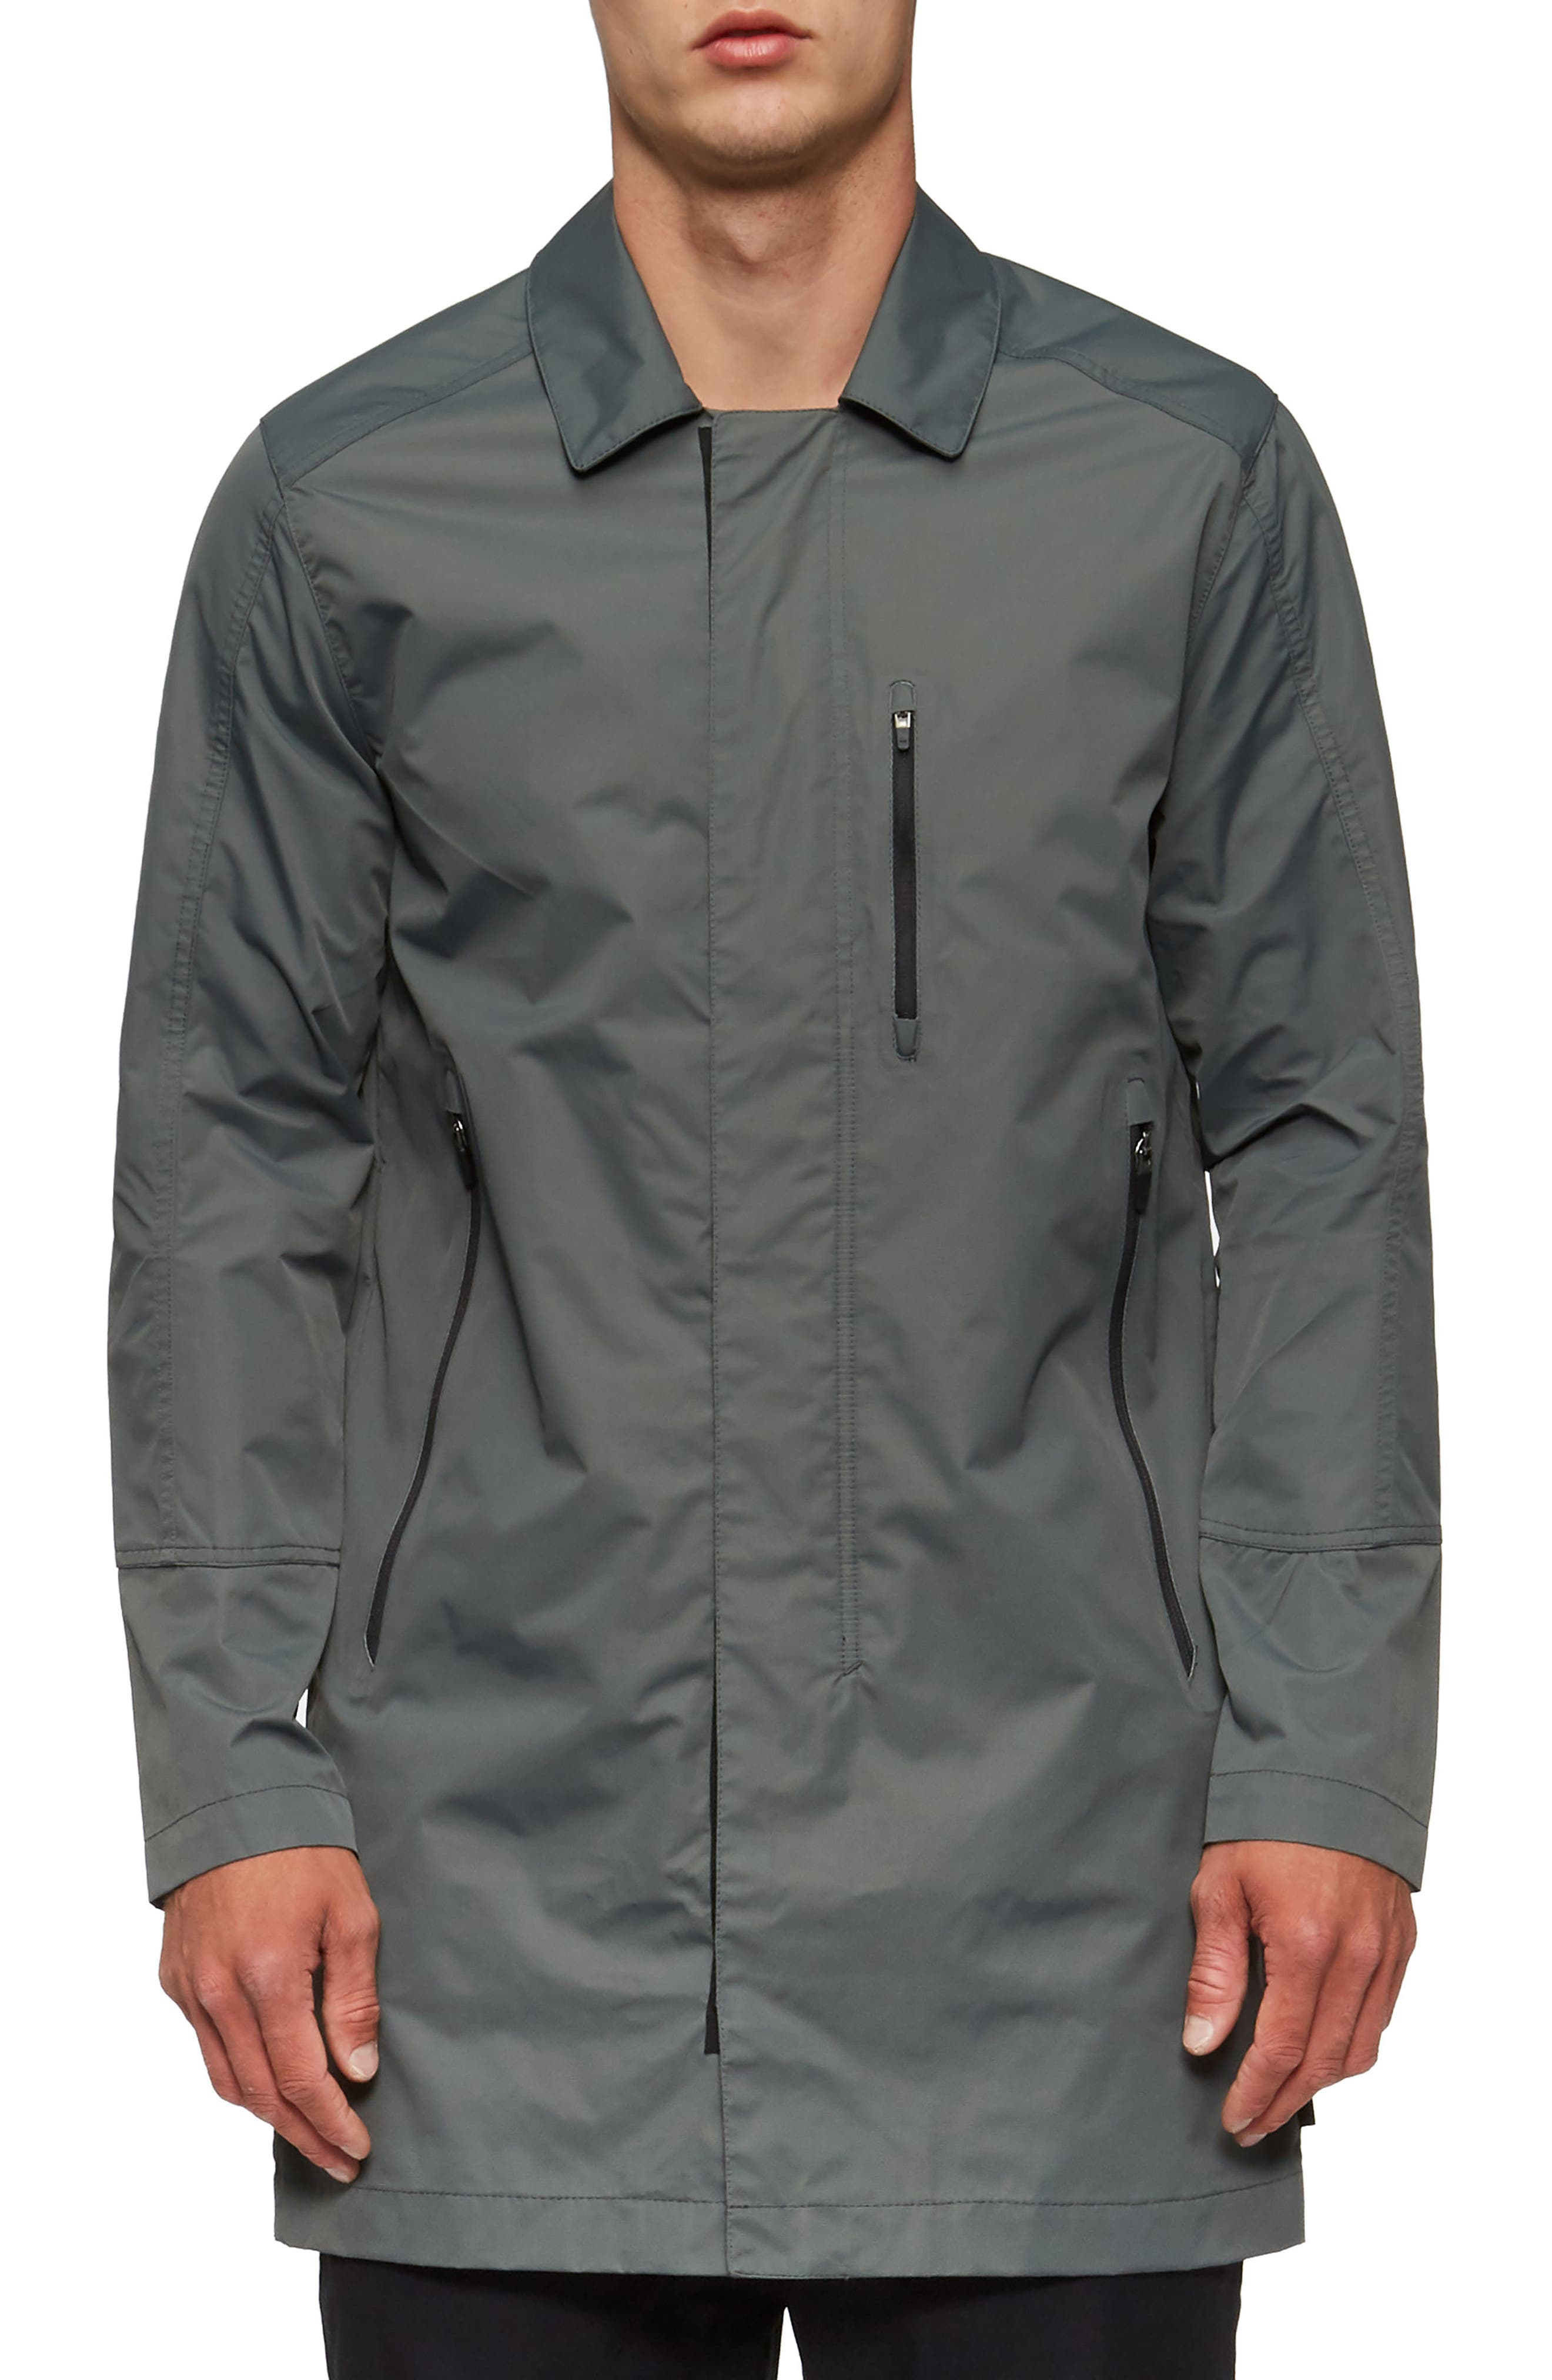 Deckard Weather Resistant Trench Coat,                             Main thumbnail 1, color,                             307